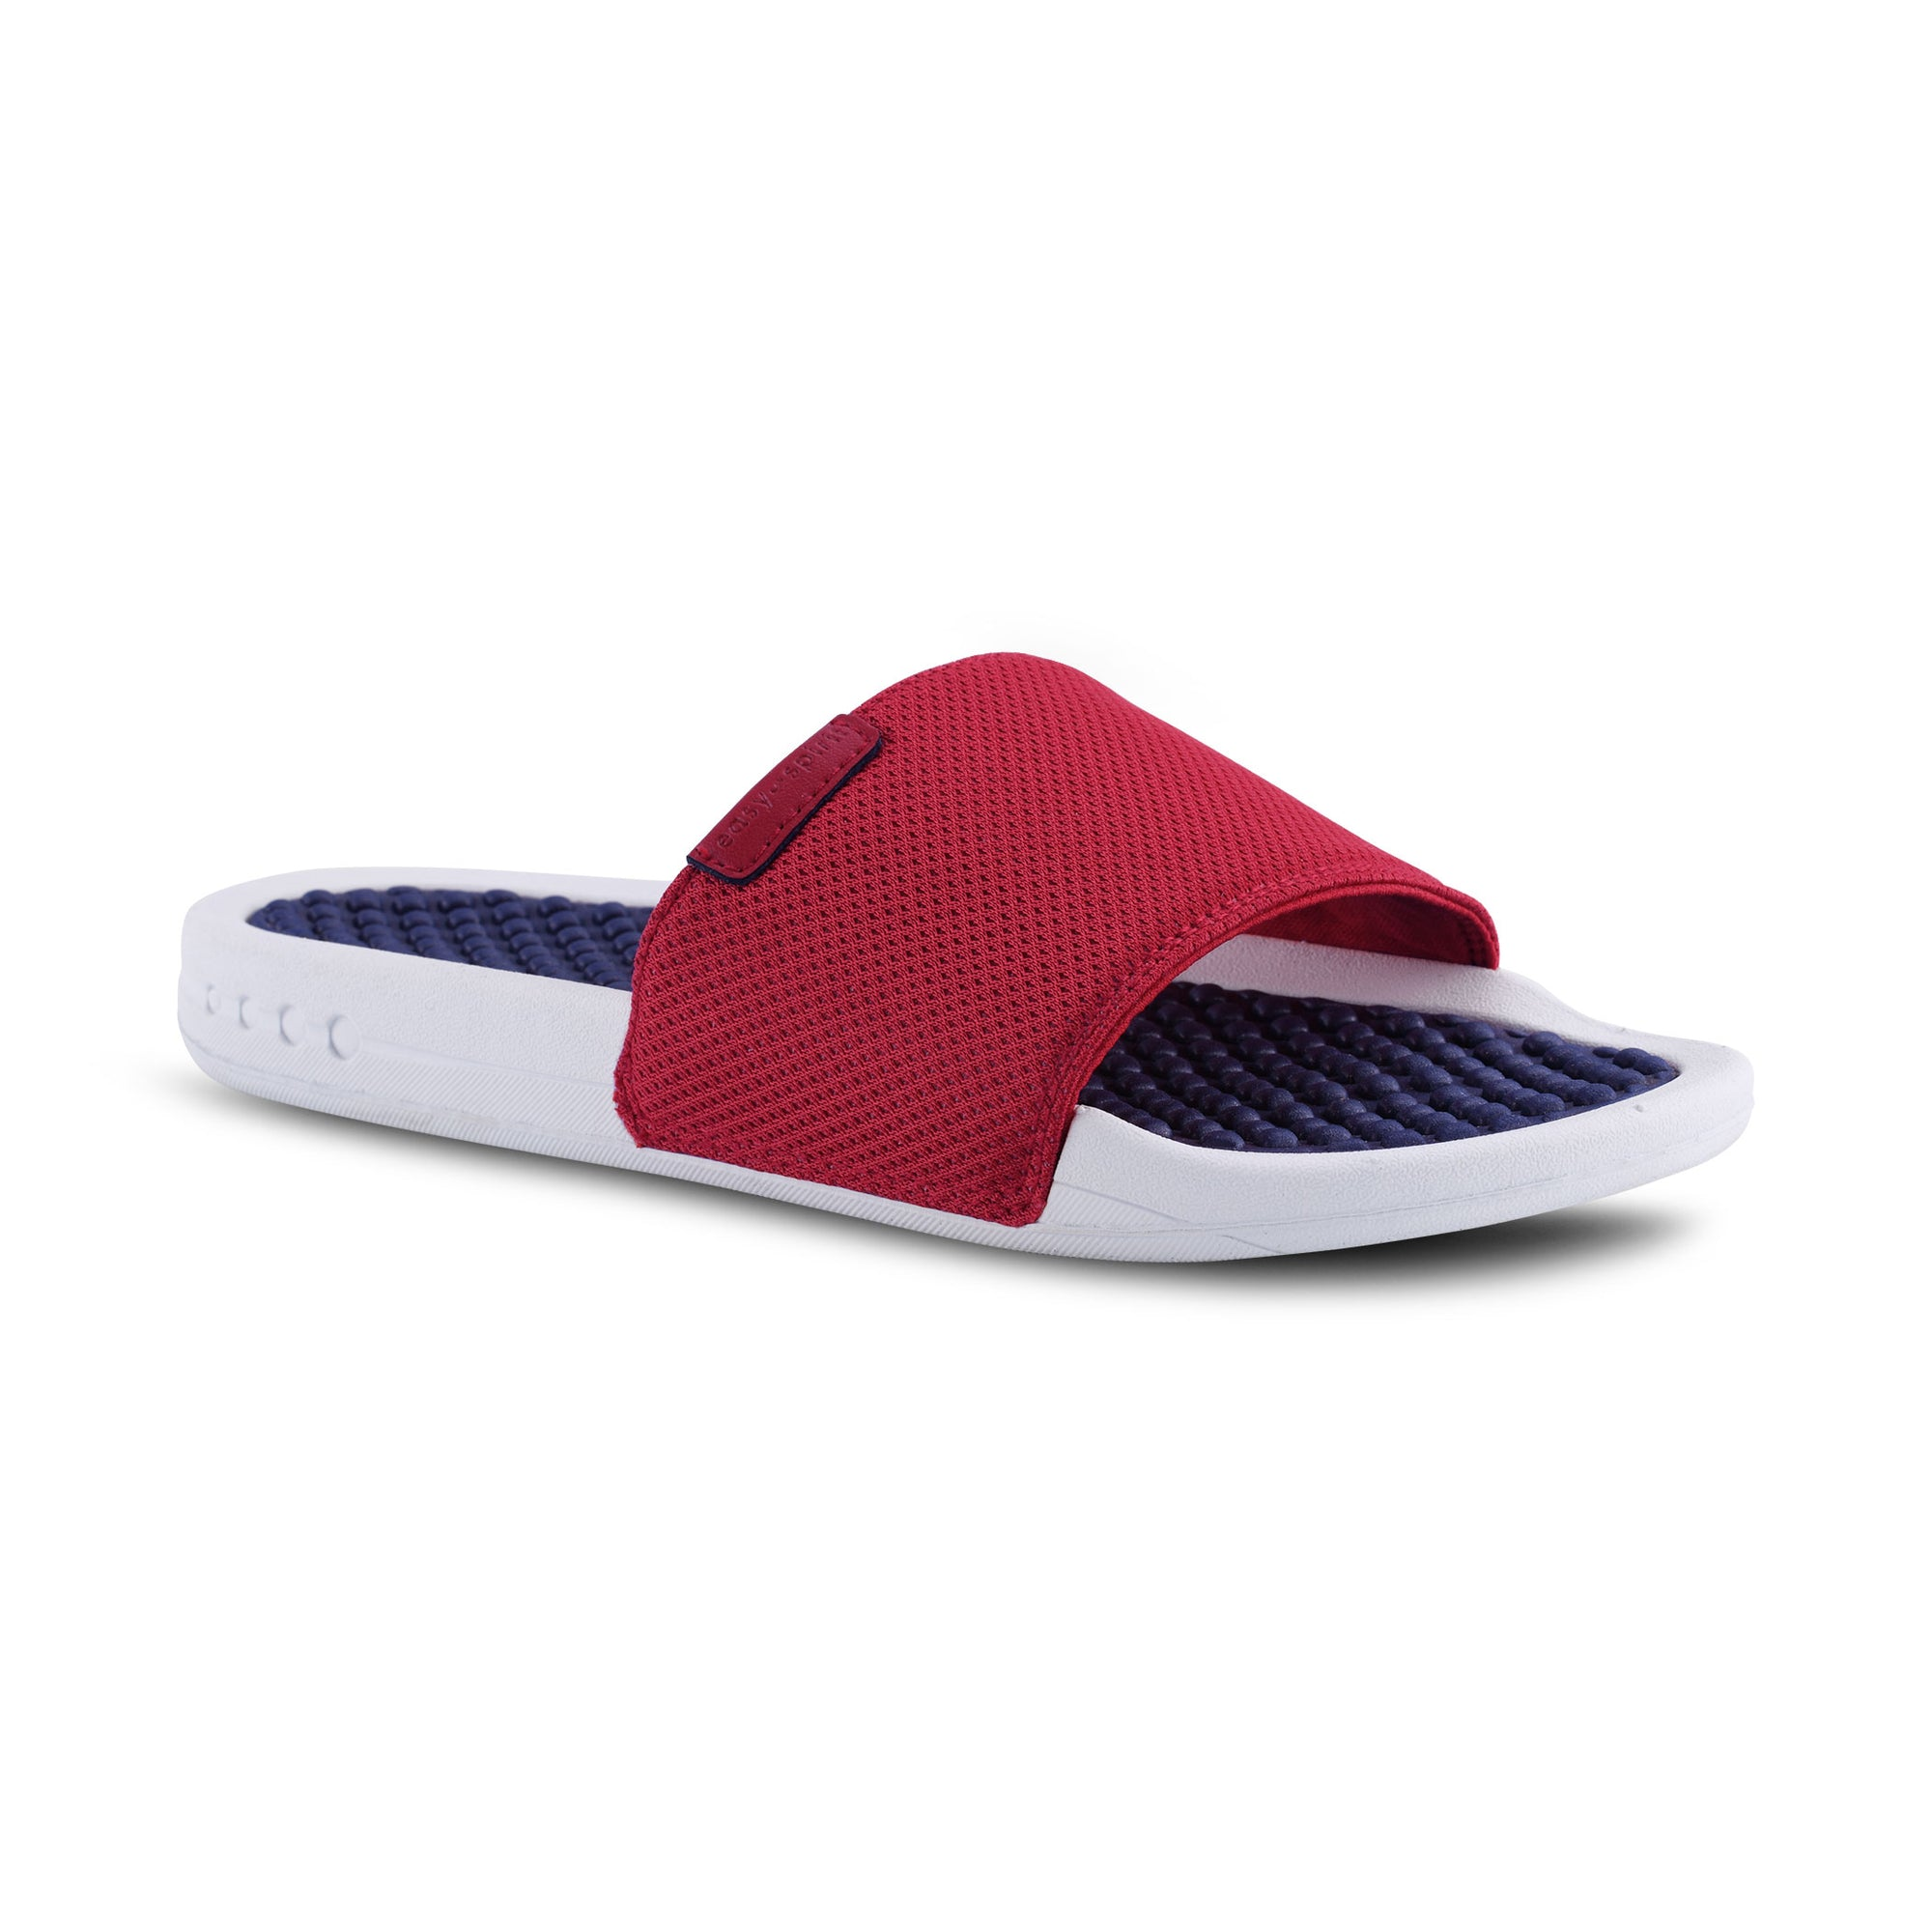 Travelcomfy Slip On Sandals